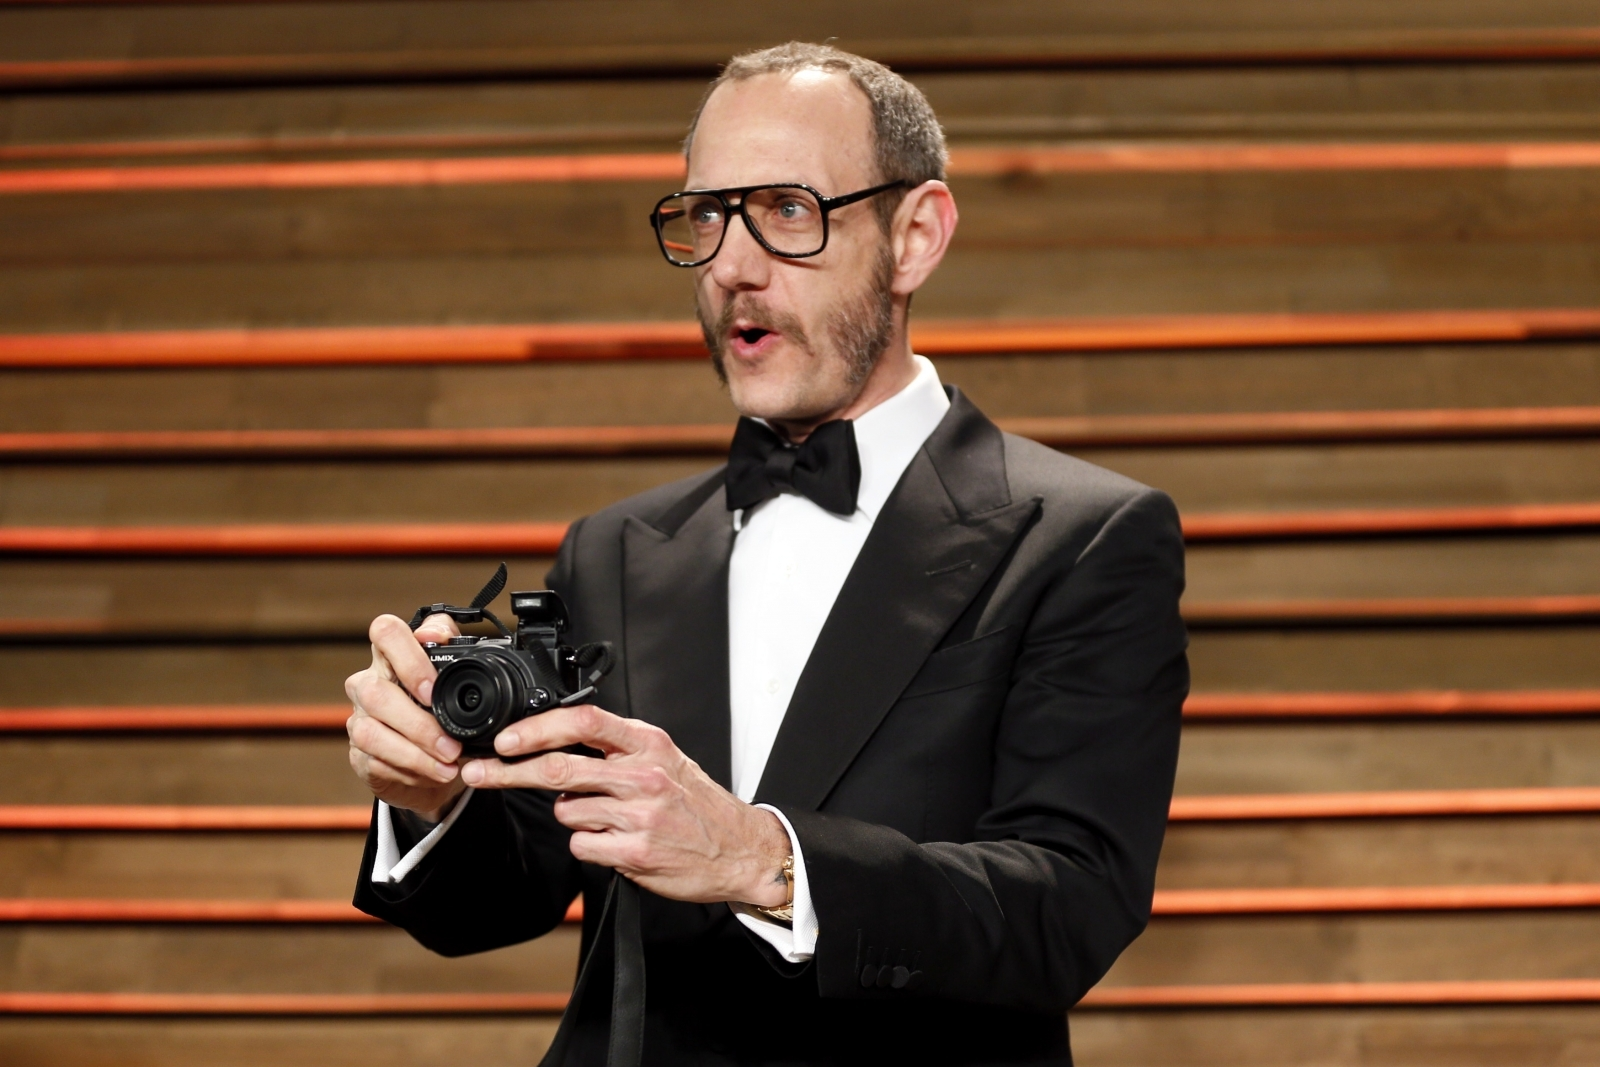 Terry Richardson, accused of sexual exploitation, banned from working with top magazines